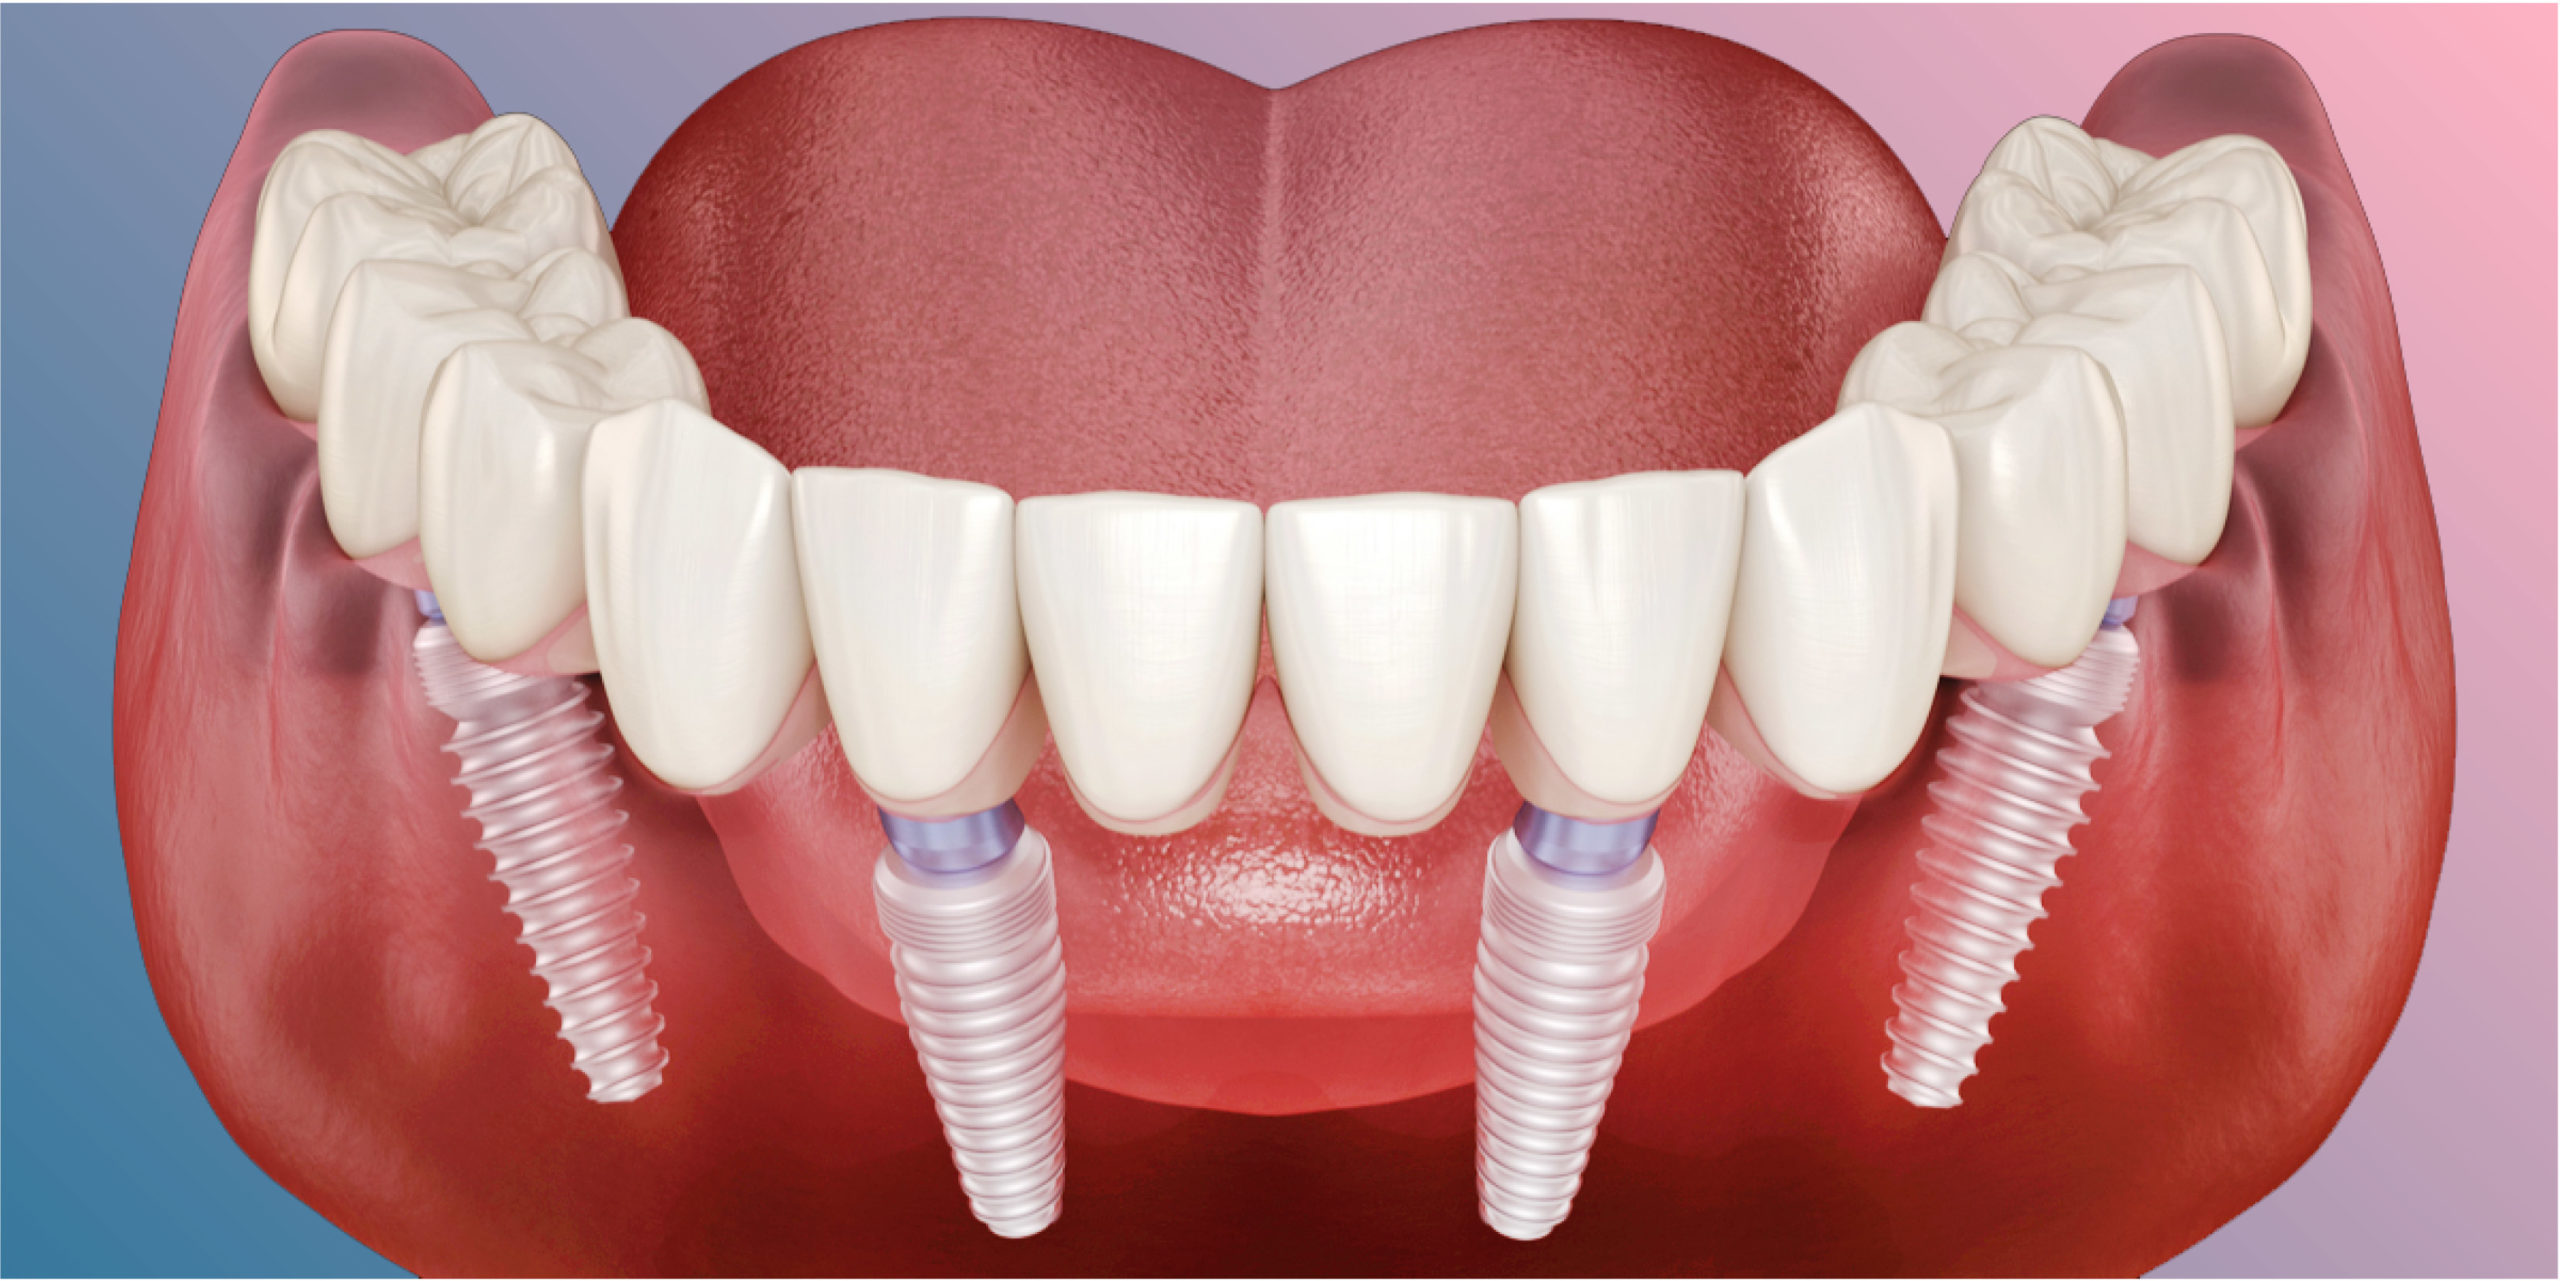 How To Decide Between All-On-4 And All-On-6 Dental Implants In South Pasadena, CA